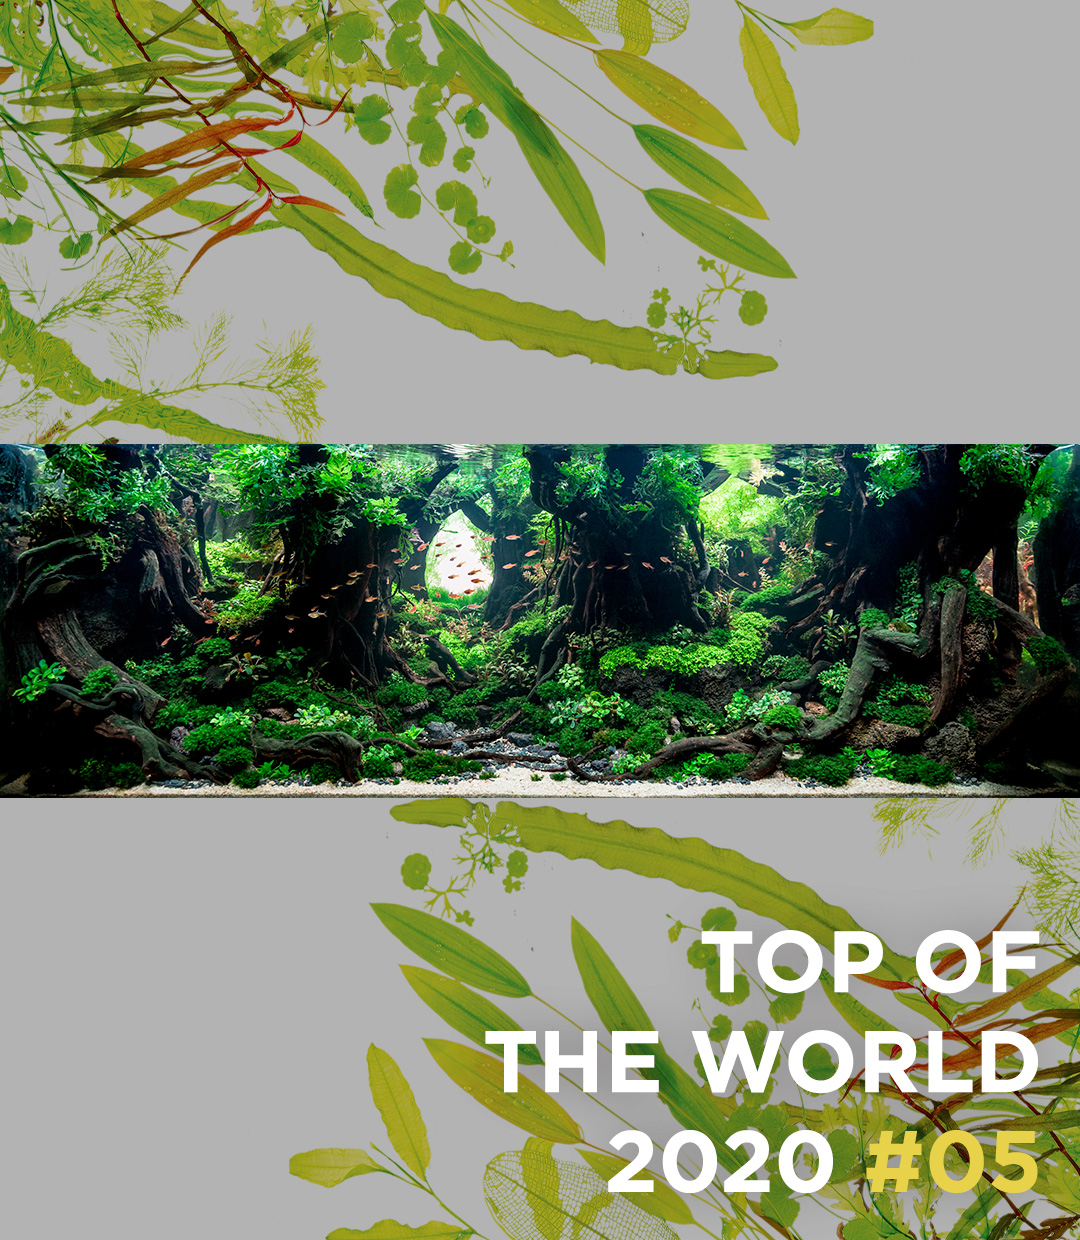 TOP OF THE WORLD 2020 #05 Roger Goh